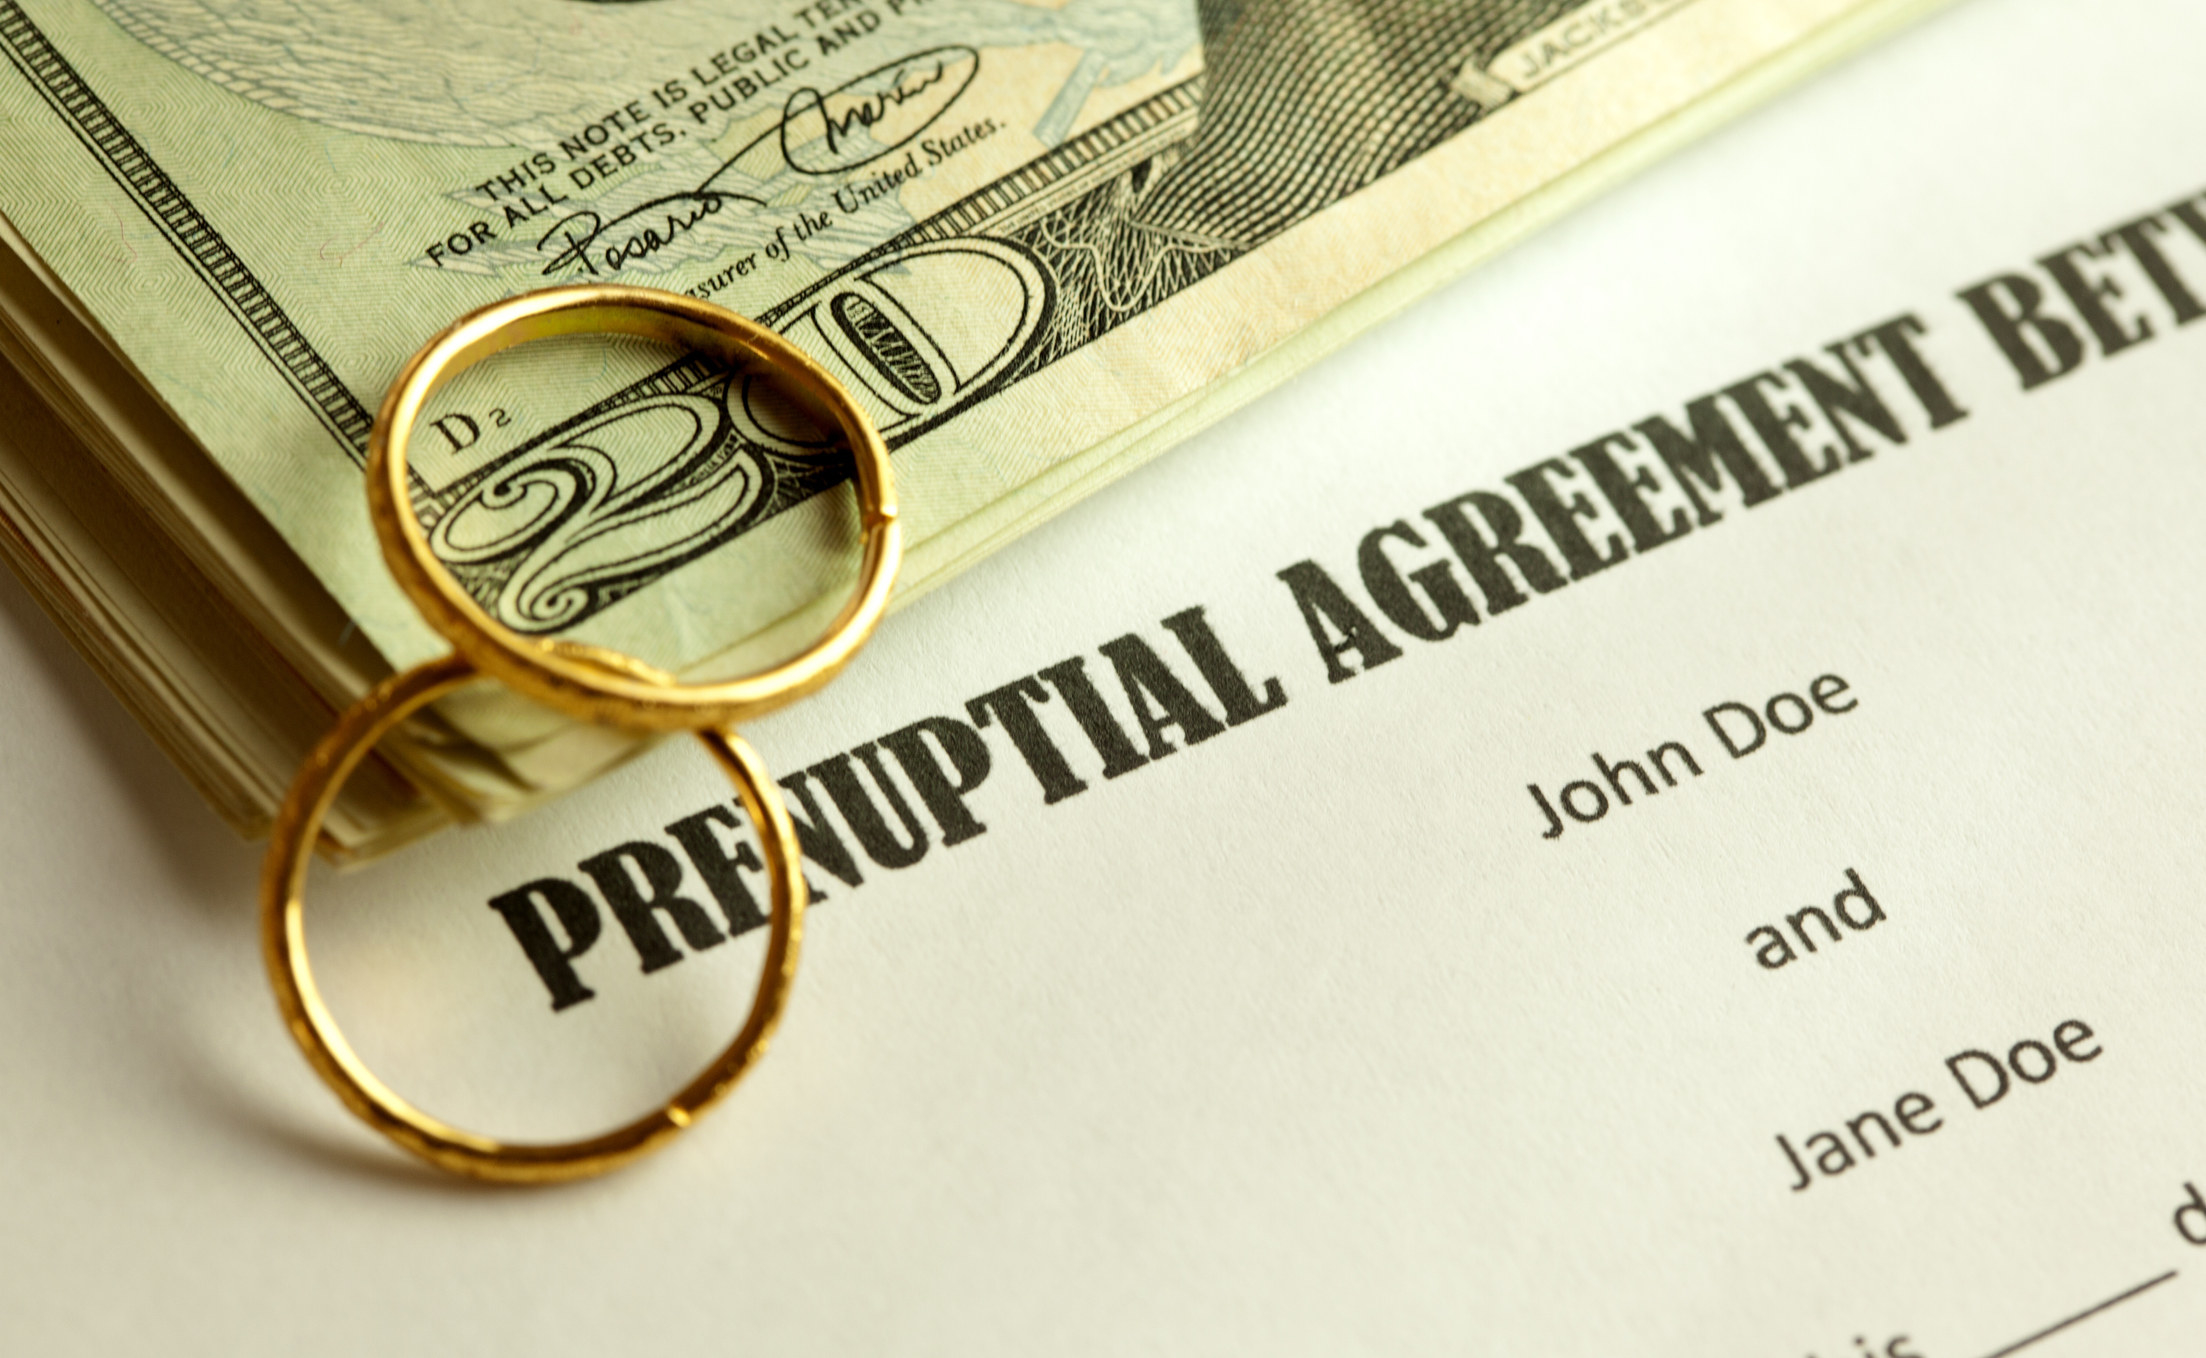 A prenuptial agreement and two wedding bands